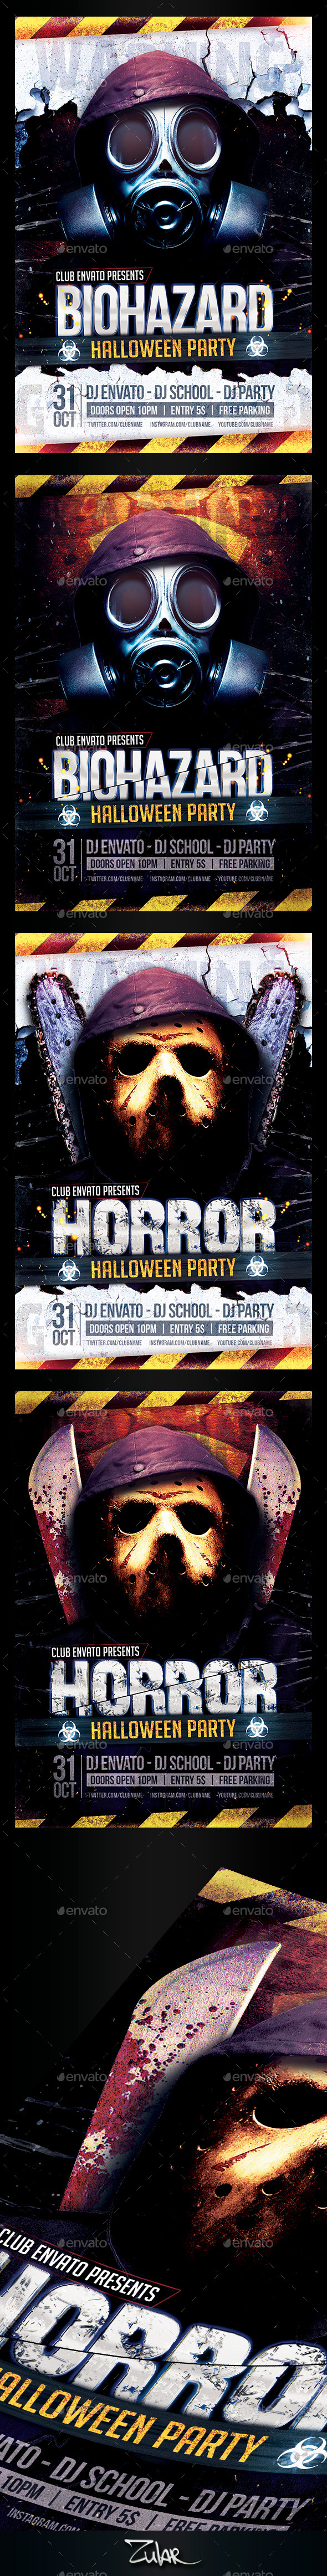 Horror u0026 Biohazard Halloween Party Flyers